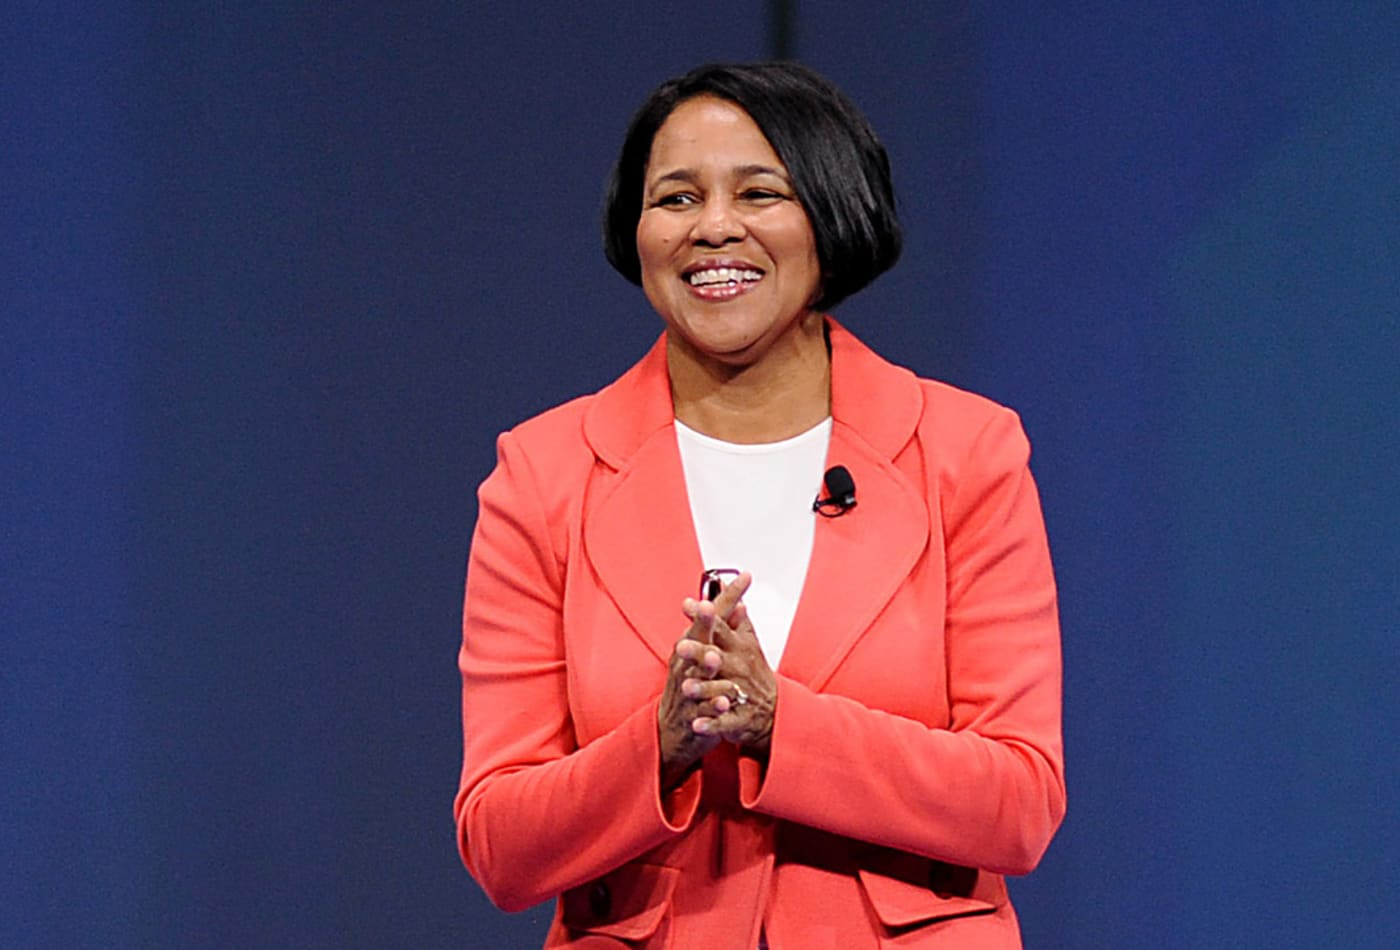 Rosalind Brewer standing on stage clapping hands smiling warmly to audience